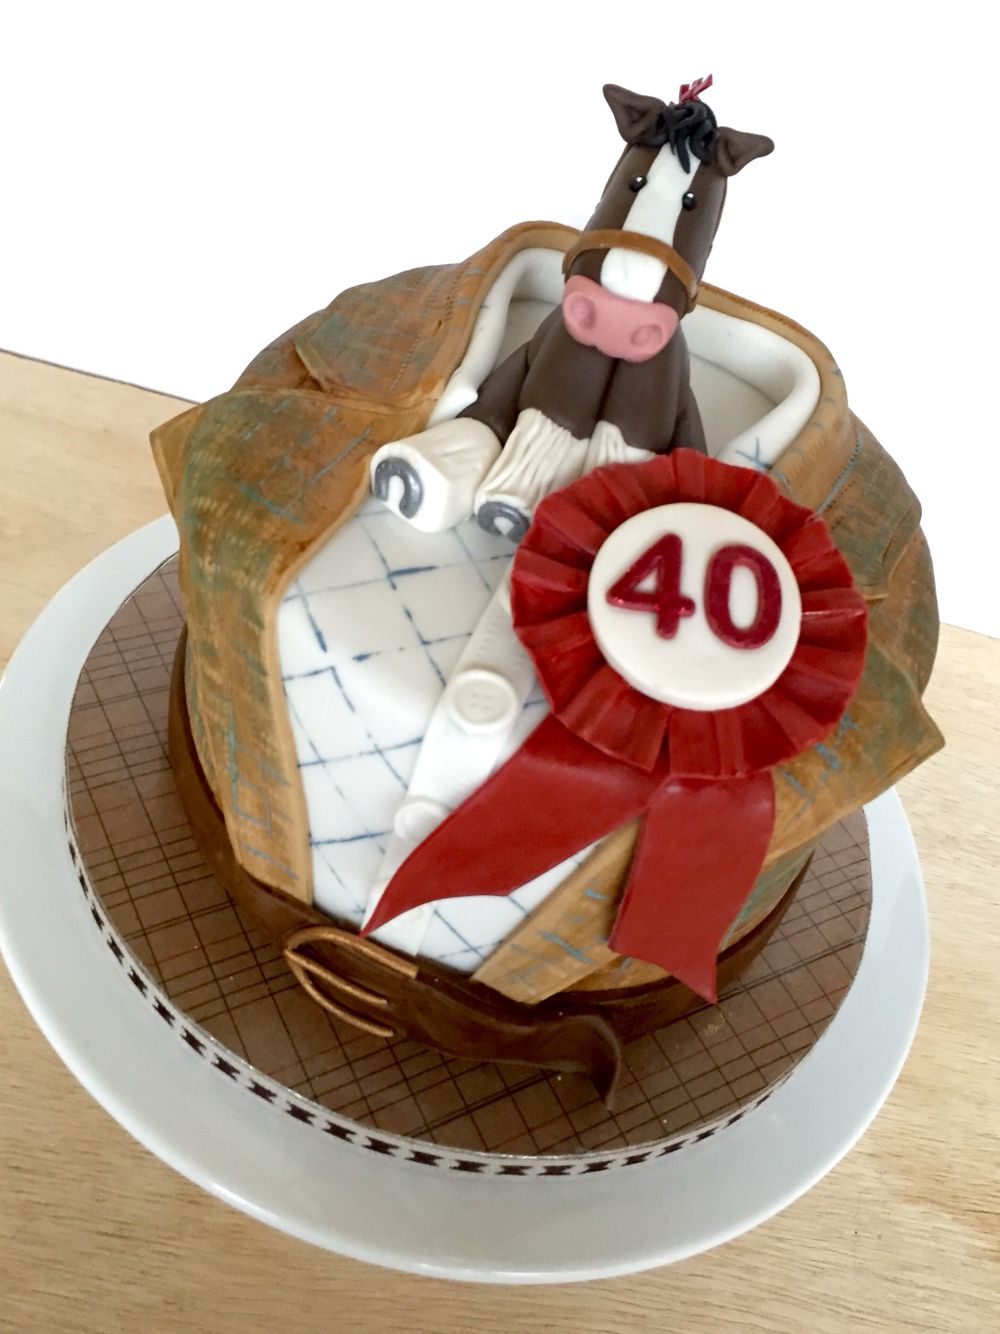 Shire Horse Tweed Suit Birthday Cake With Rosette Cakes By Bird